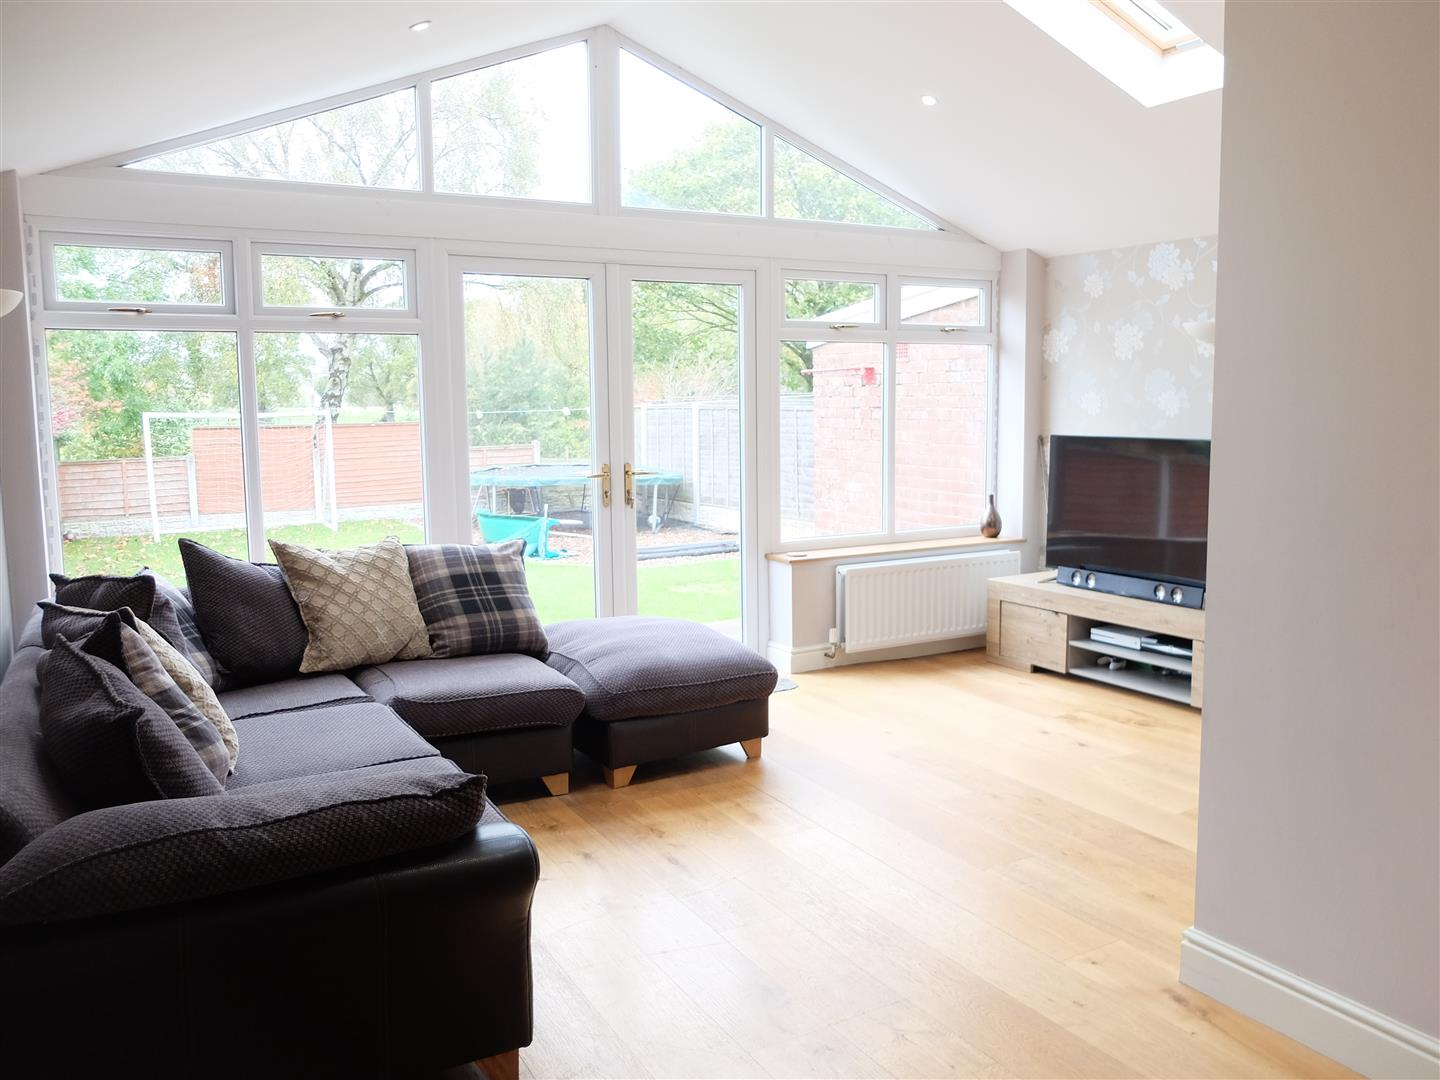 3 Bedrooms House - Semi-Detached For Sale 218 Wigton Road Carlisle